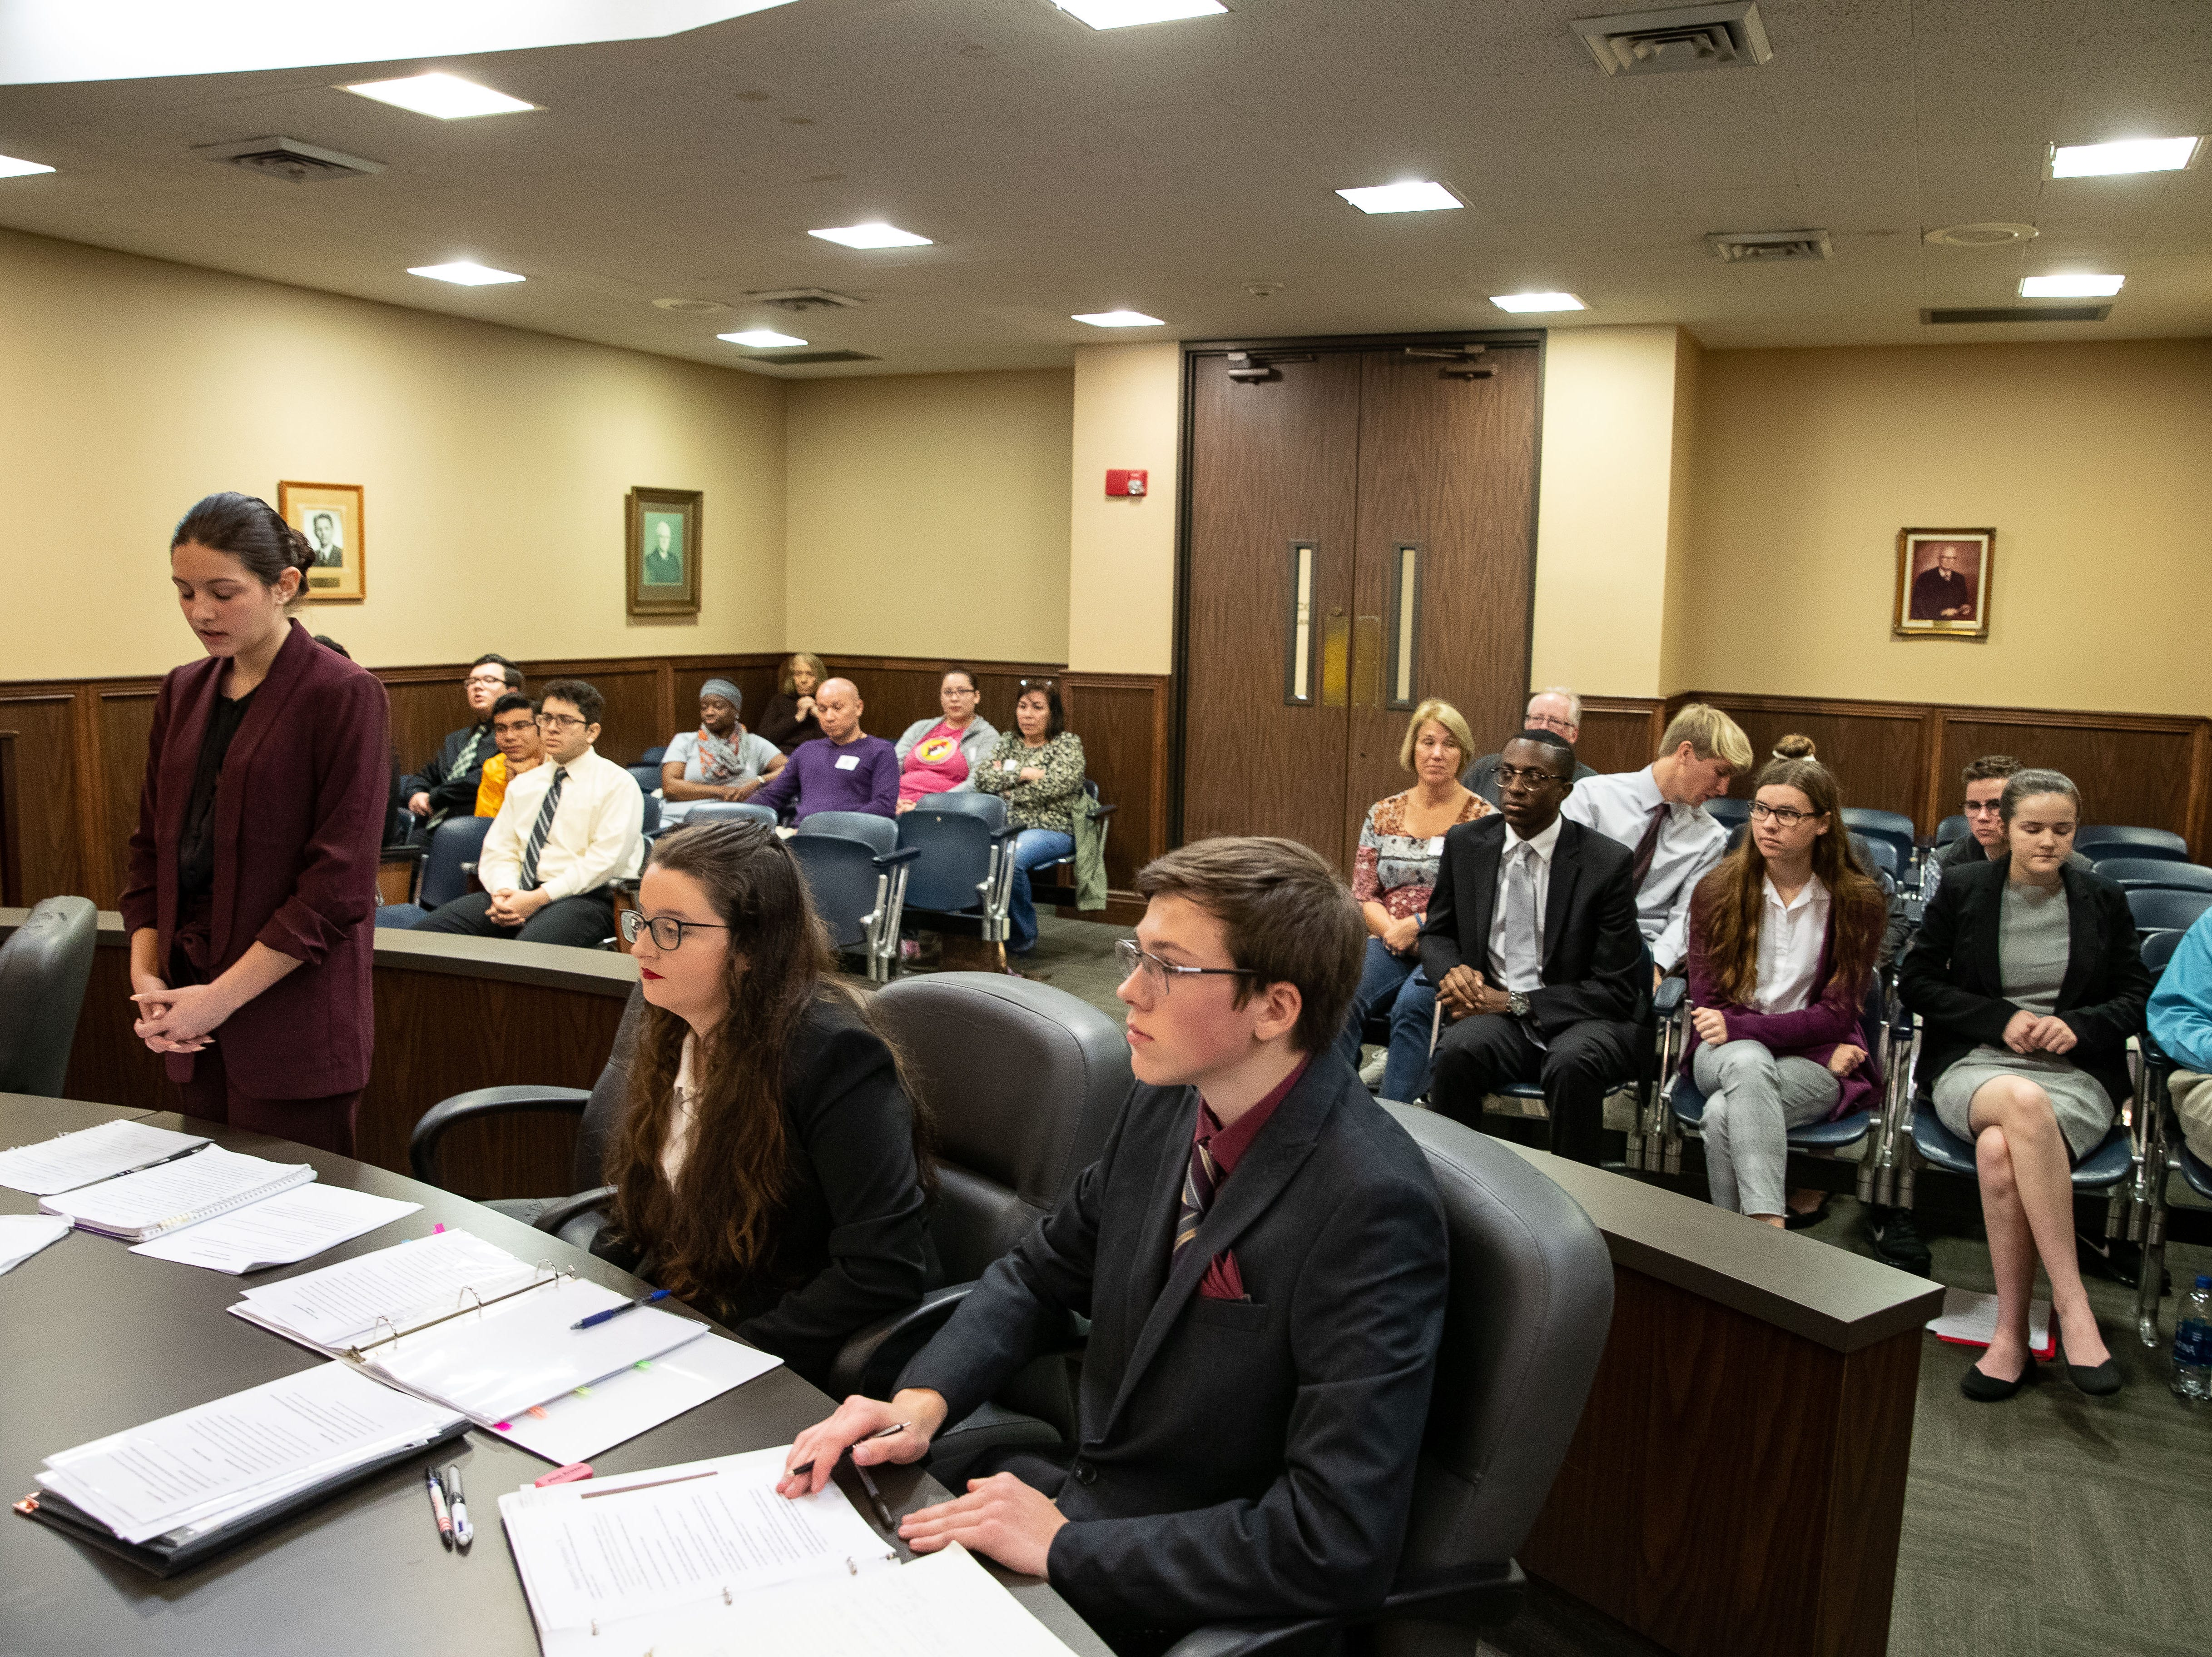 Flour Bluff competes against Branch Academy in a Mock Trial competition at the Nueces County Courthouse on Saturday, Feb. 2, 2019.